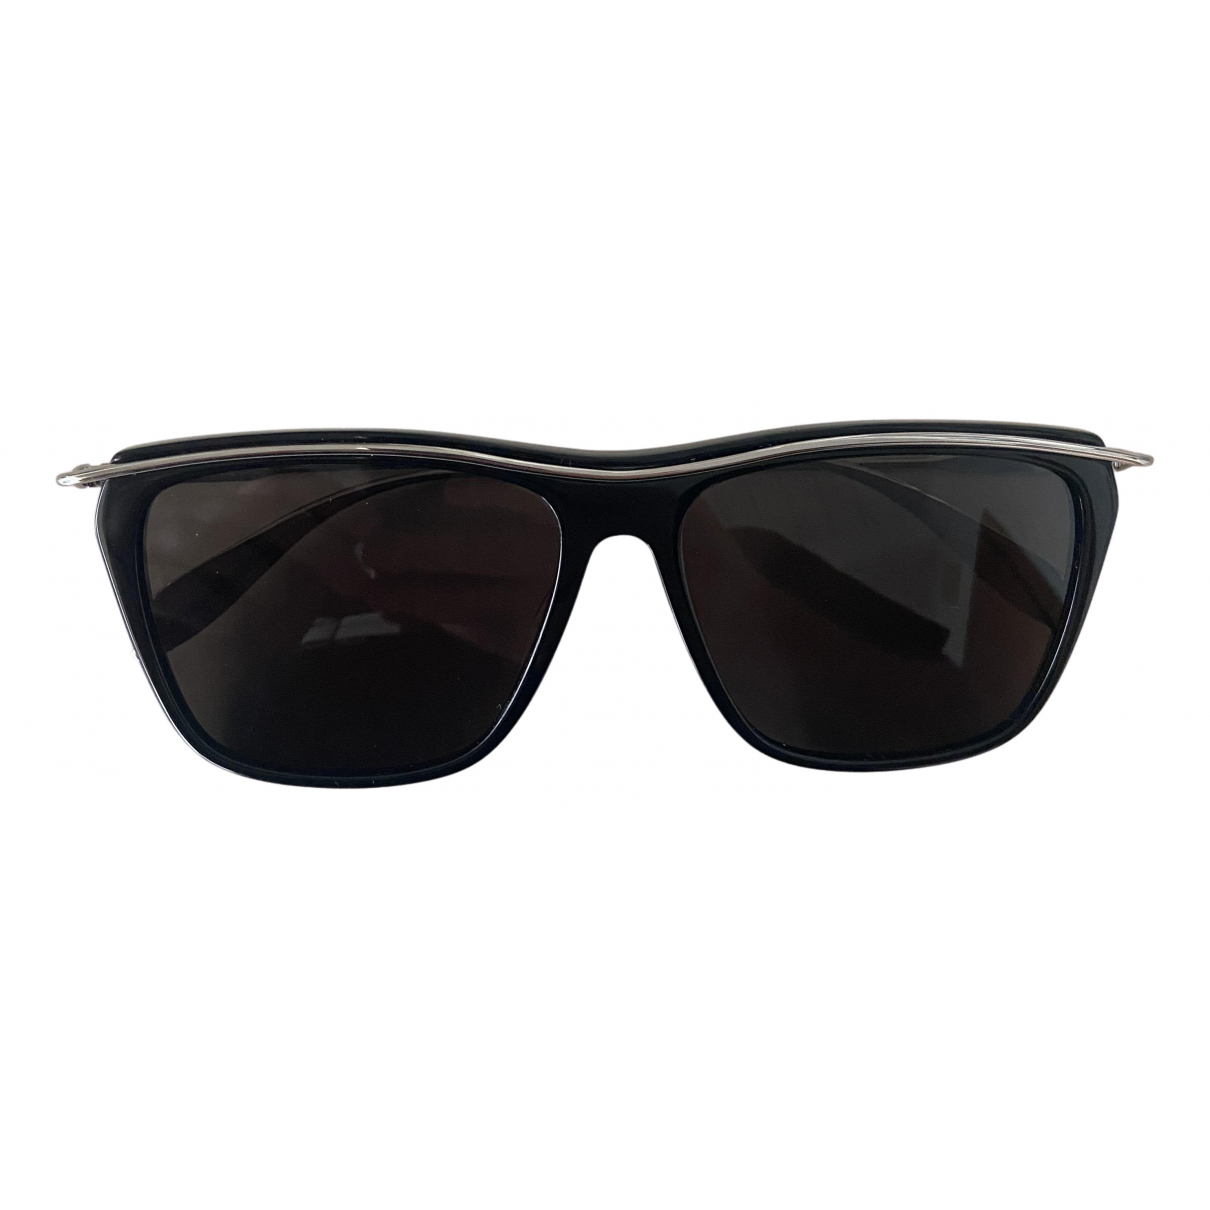 Alexander Mcqueen \N Black Metal Sunglasses for Men \N